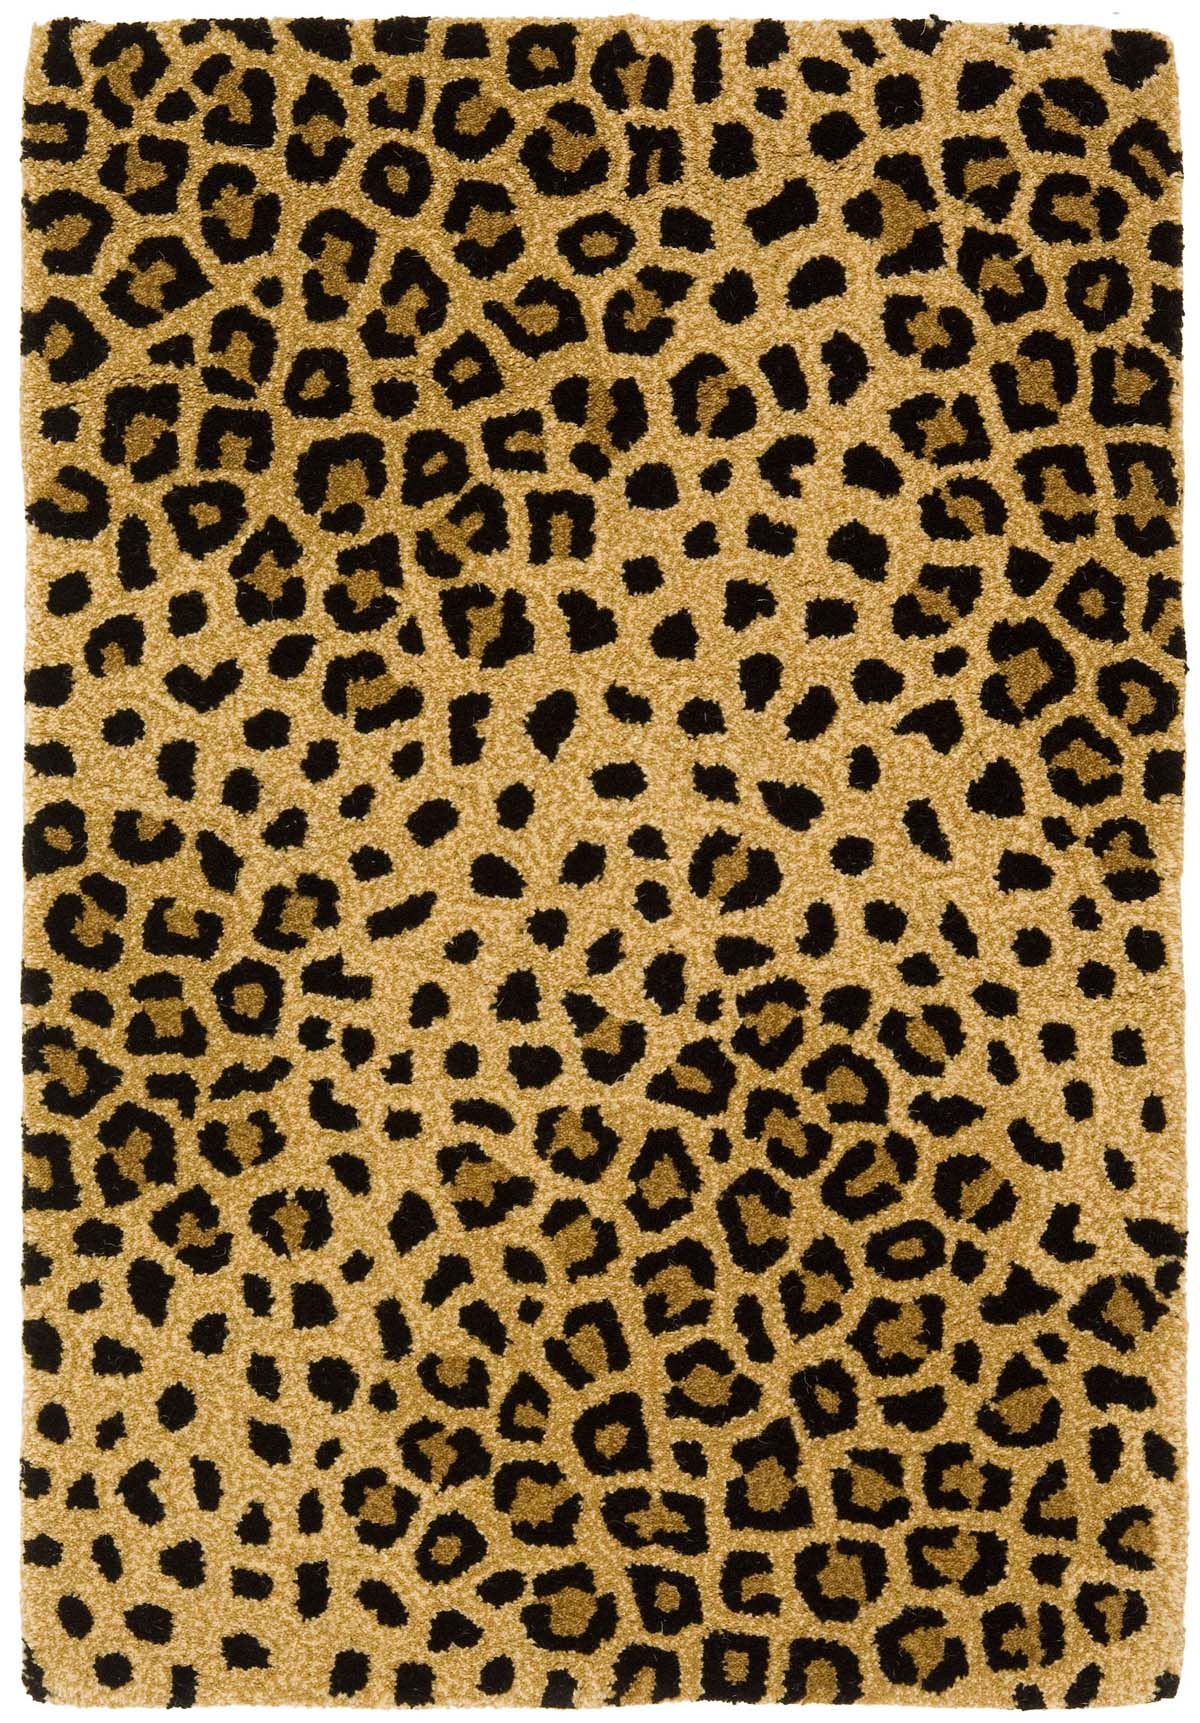 Animal Print Rugs Mark Gonsenhauser S Rug Amp Carpet